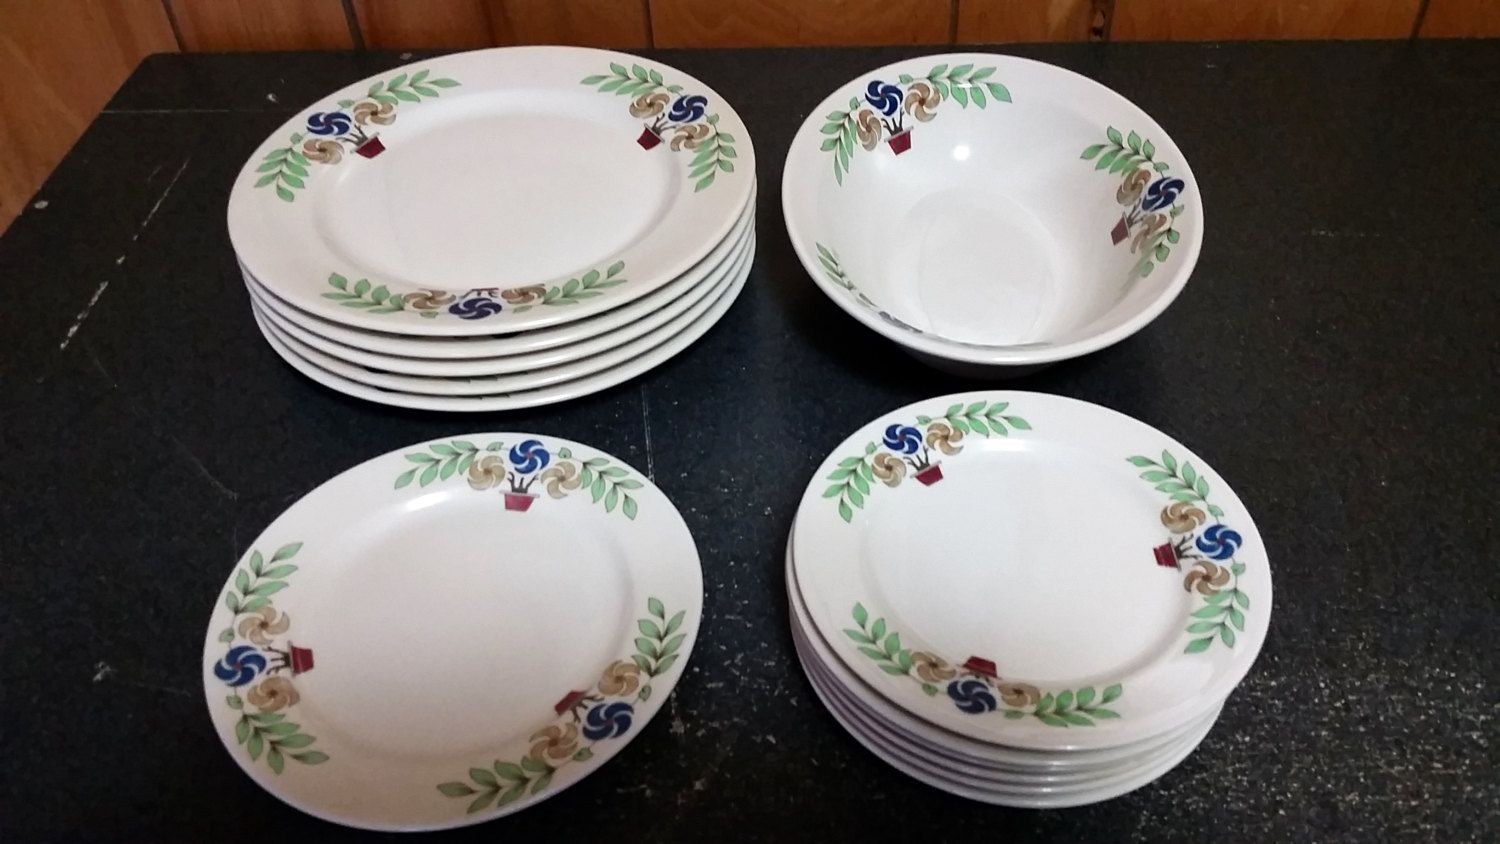 Rare Syracuse China 13 Piece Great Northern Railroad Oriental Pattern Dinner Set - 5 Dinner Plates 7 Dessert Plates and 1 Oval Serving Bowl USD) by ... & Rare Syracuse China 13 Piece Great Northern Railroad Oriental ...